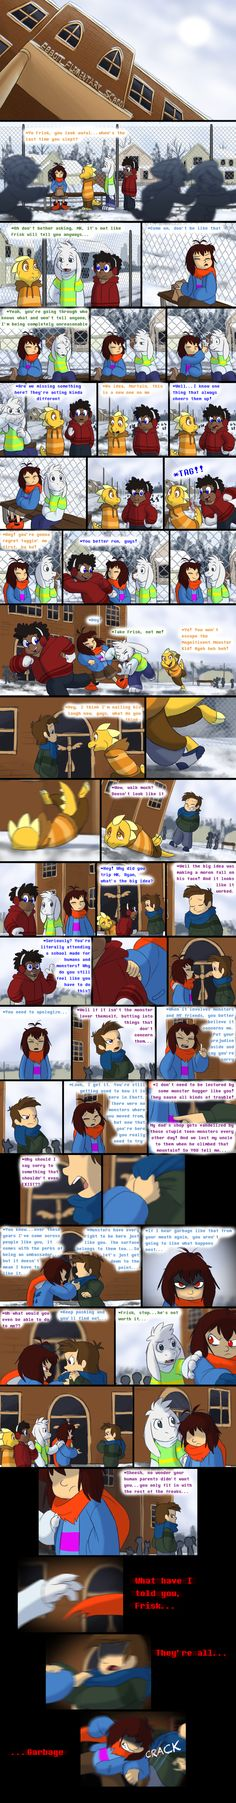 Endertale - Page 22 by TC-96 on DeviantArt **latest page**